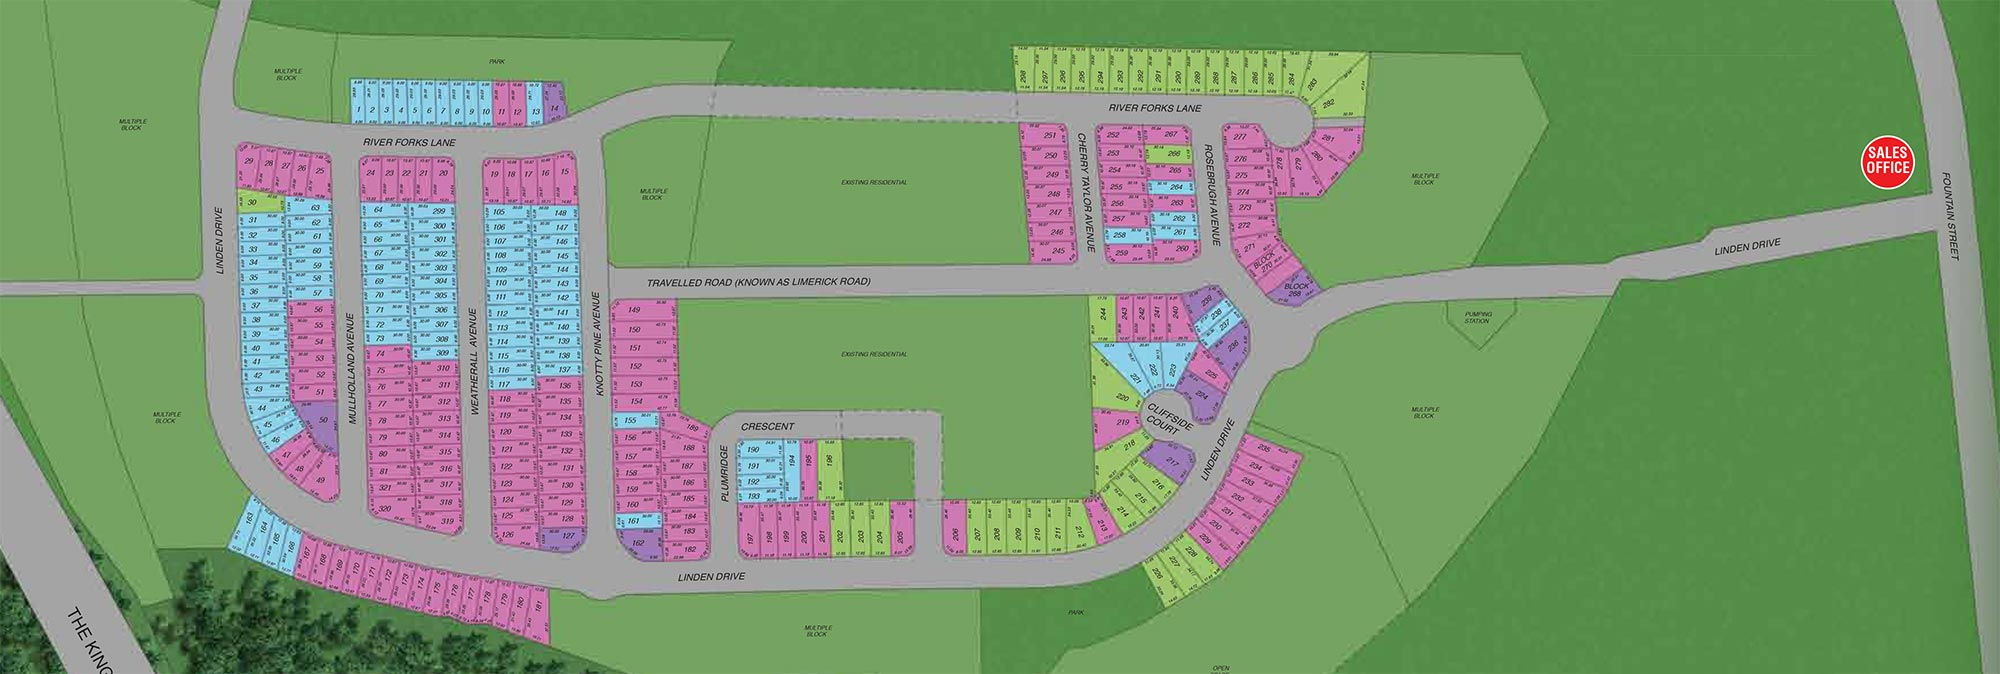 Site plan for Grand River Woods in Cambridge, Ontario